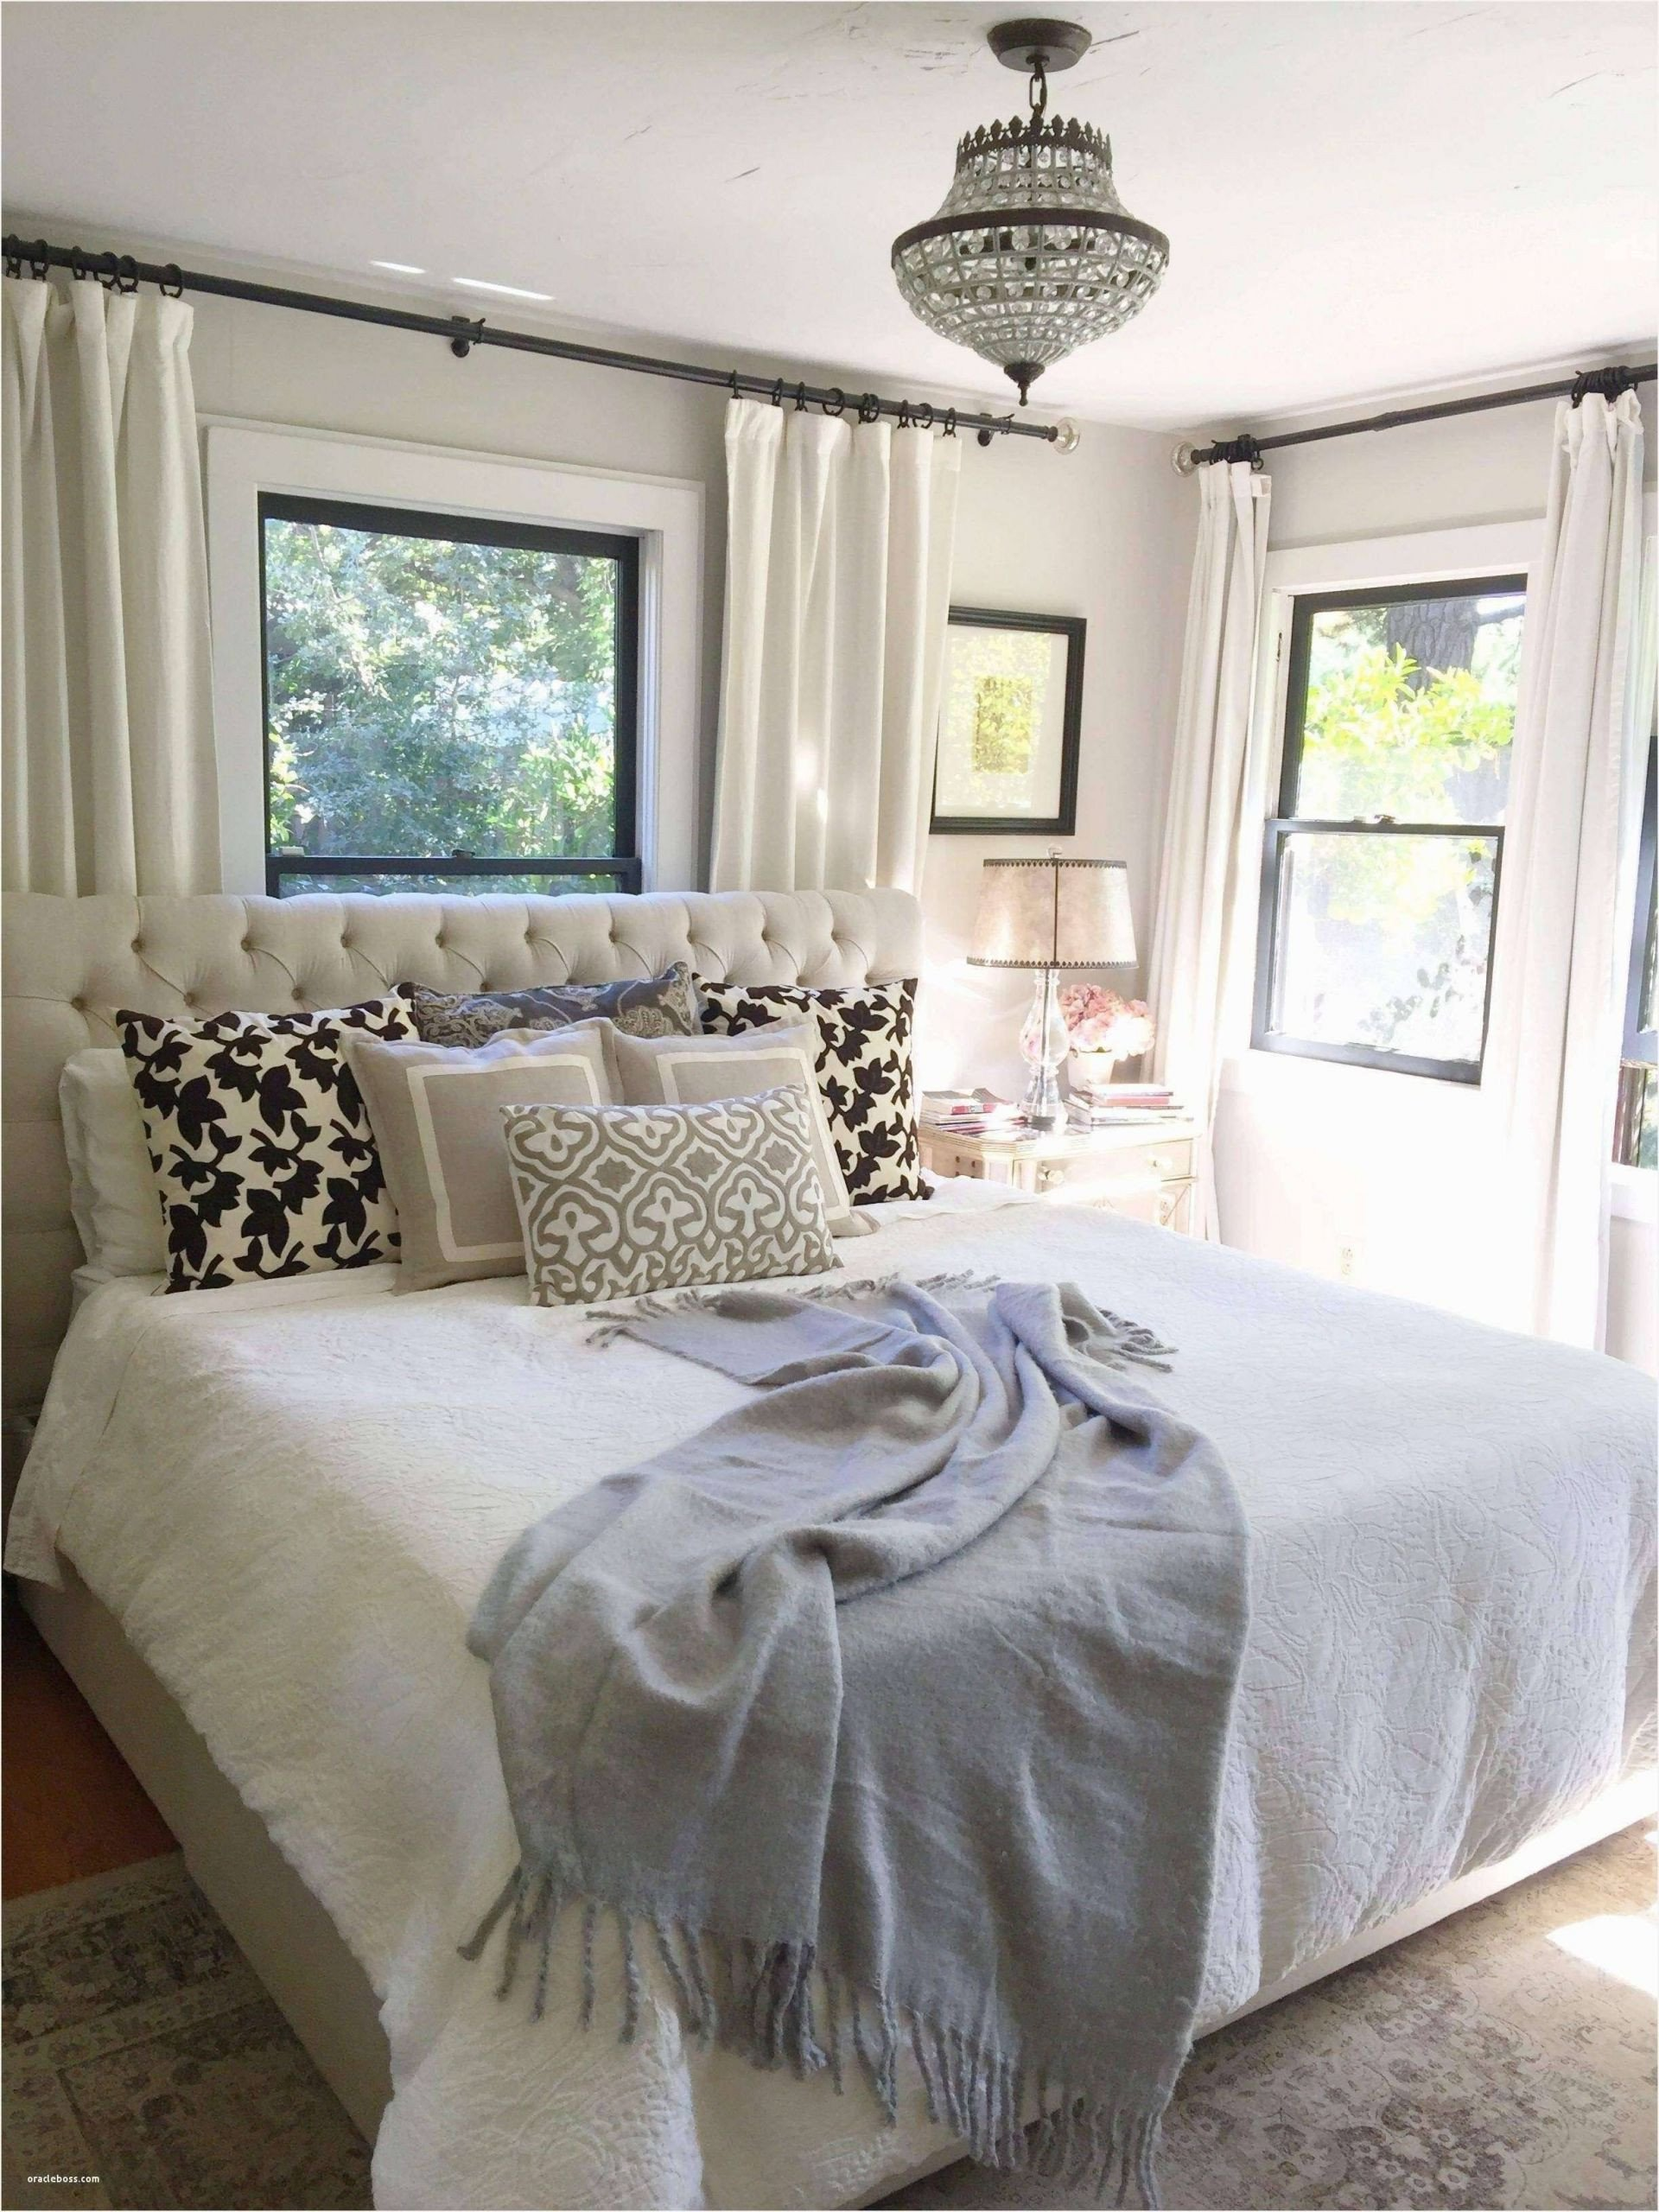 Teen Bedroom Decoration Ideas Lovely Bedroom Ideas for Teens